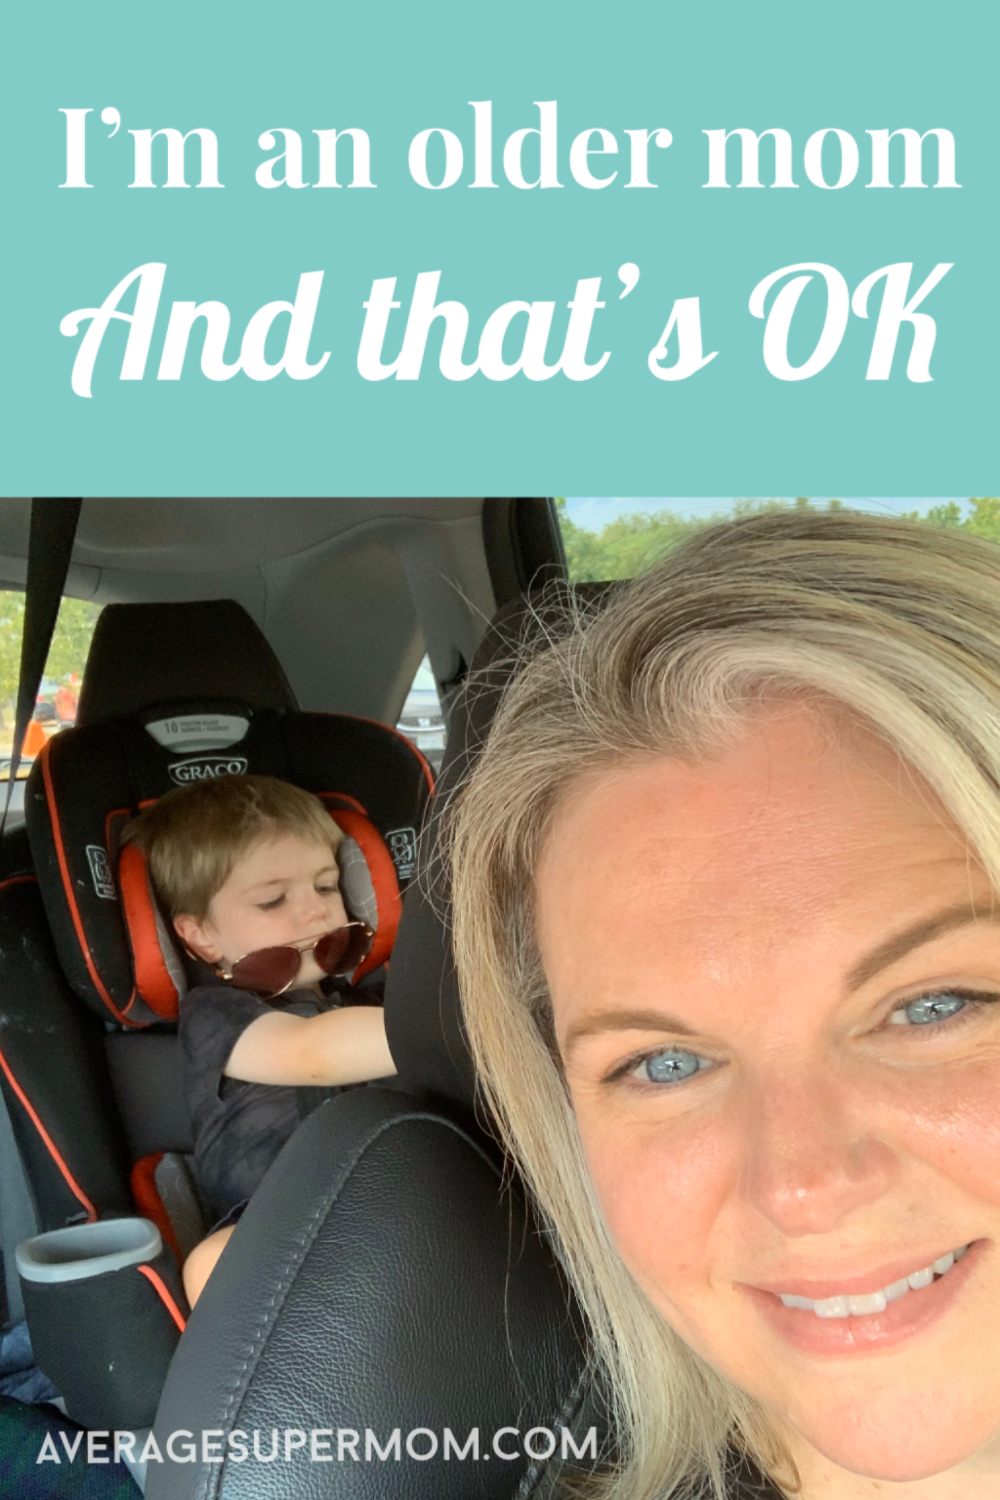 I'm an older mom and that's ok